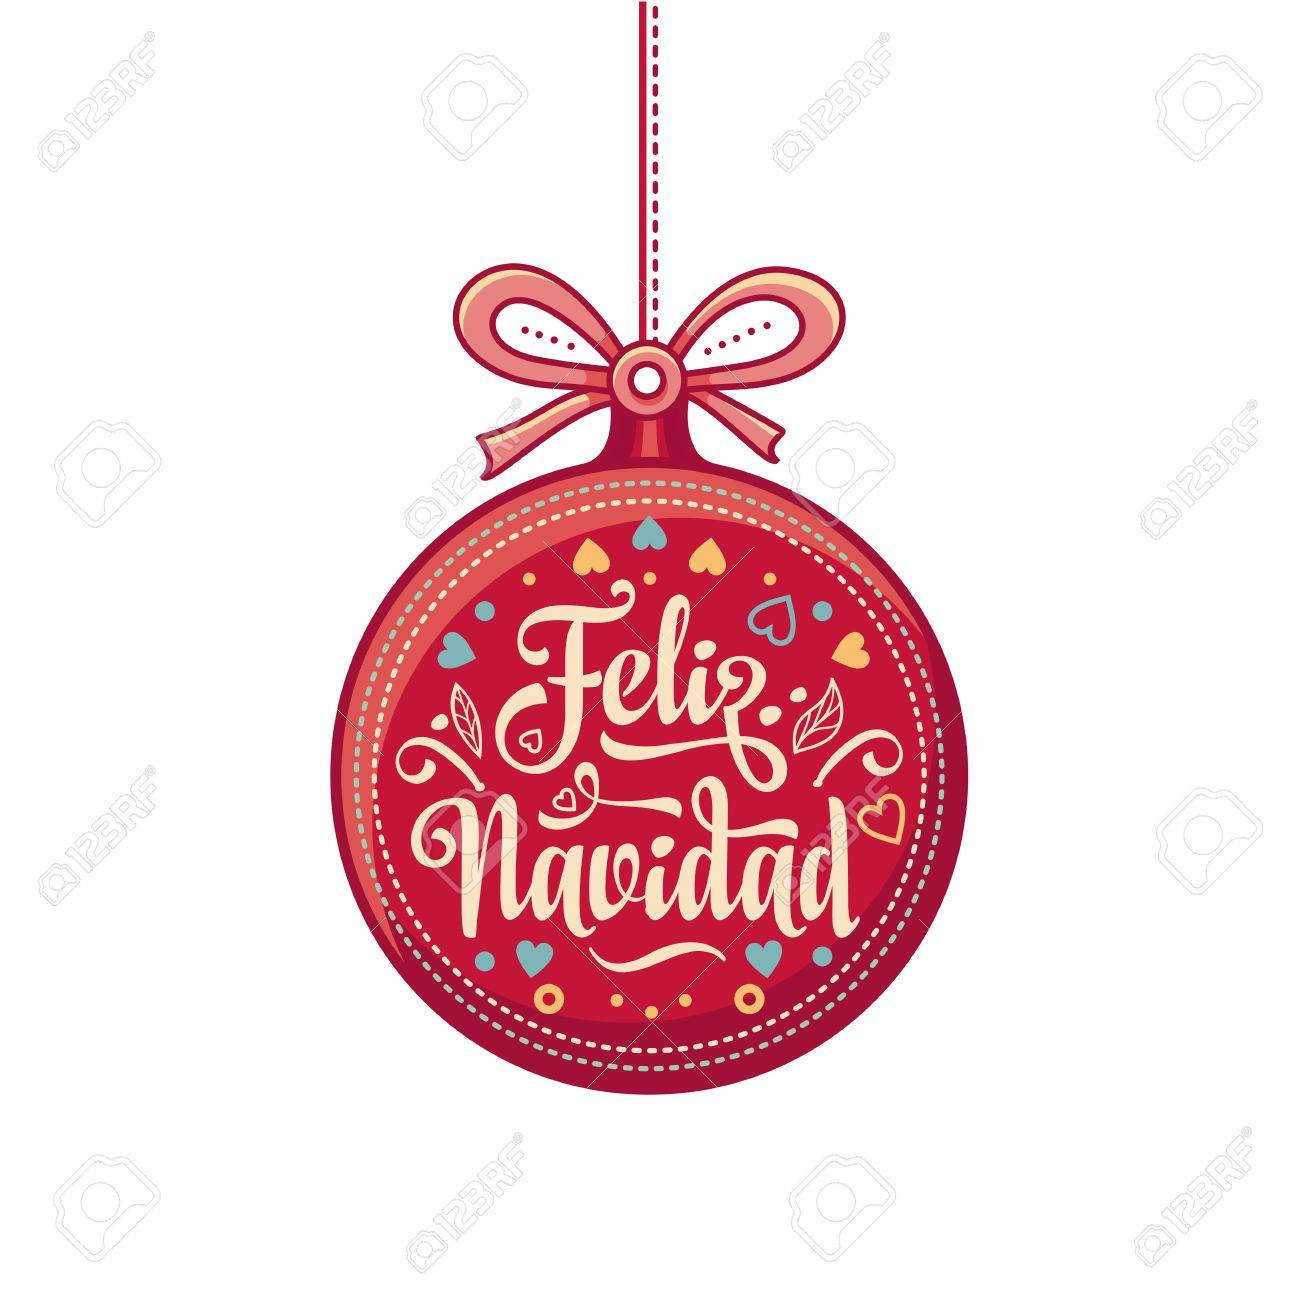 christmas decorations for invitations and greeting cards in spanish